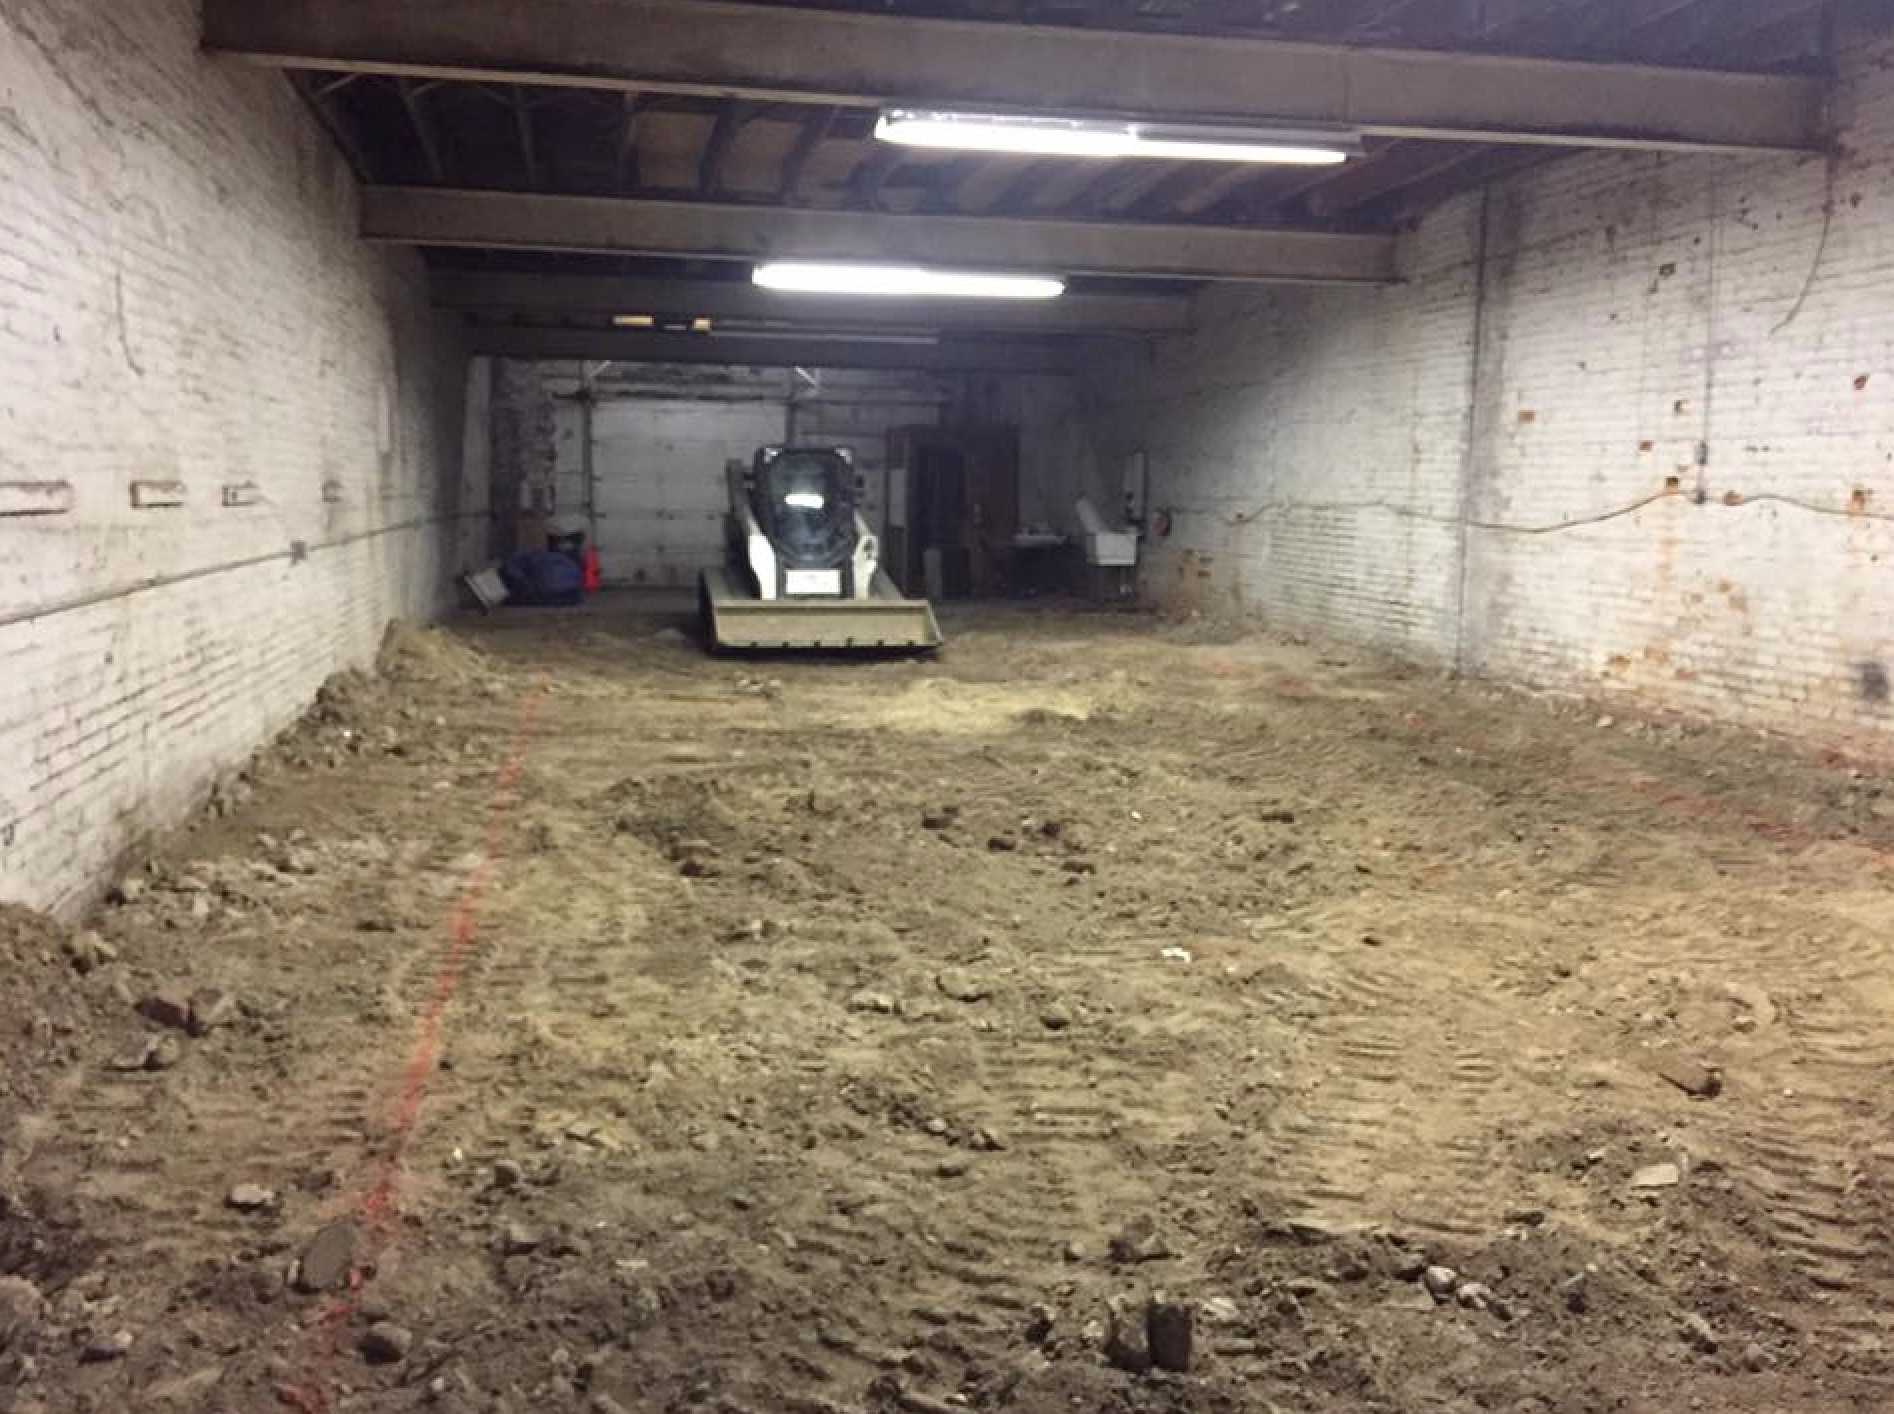 an earth-mover sits motionless in a garage with a dirt floor